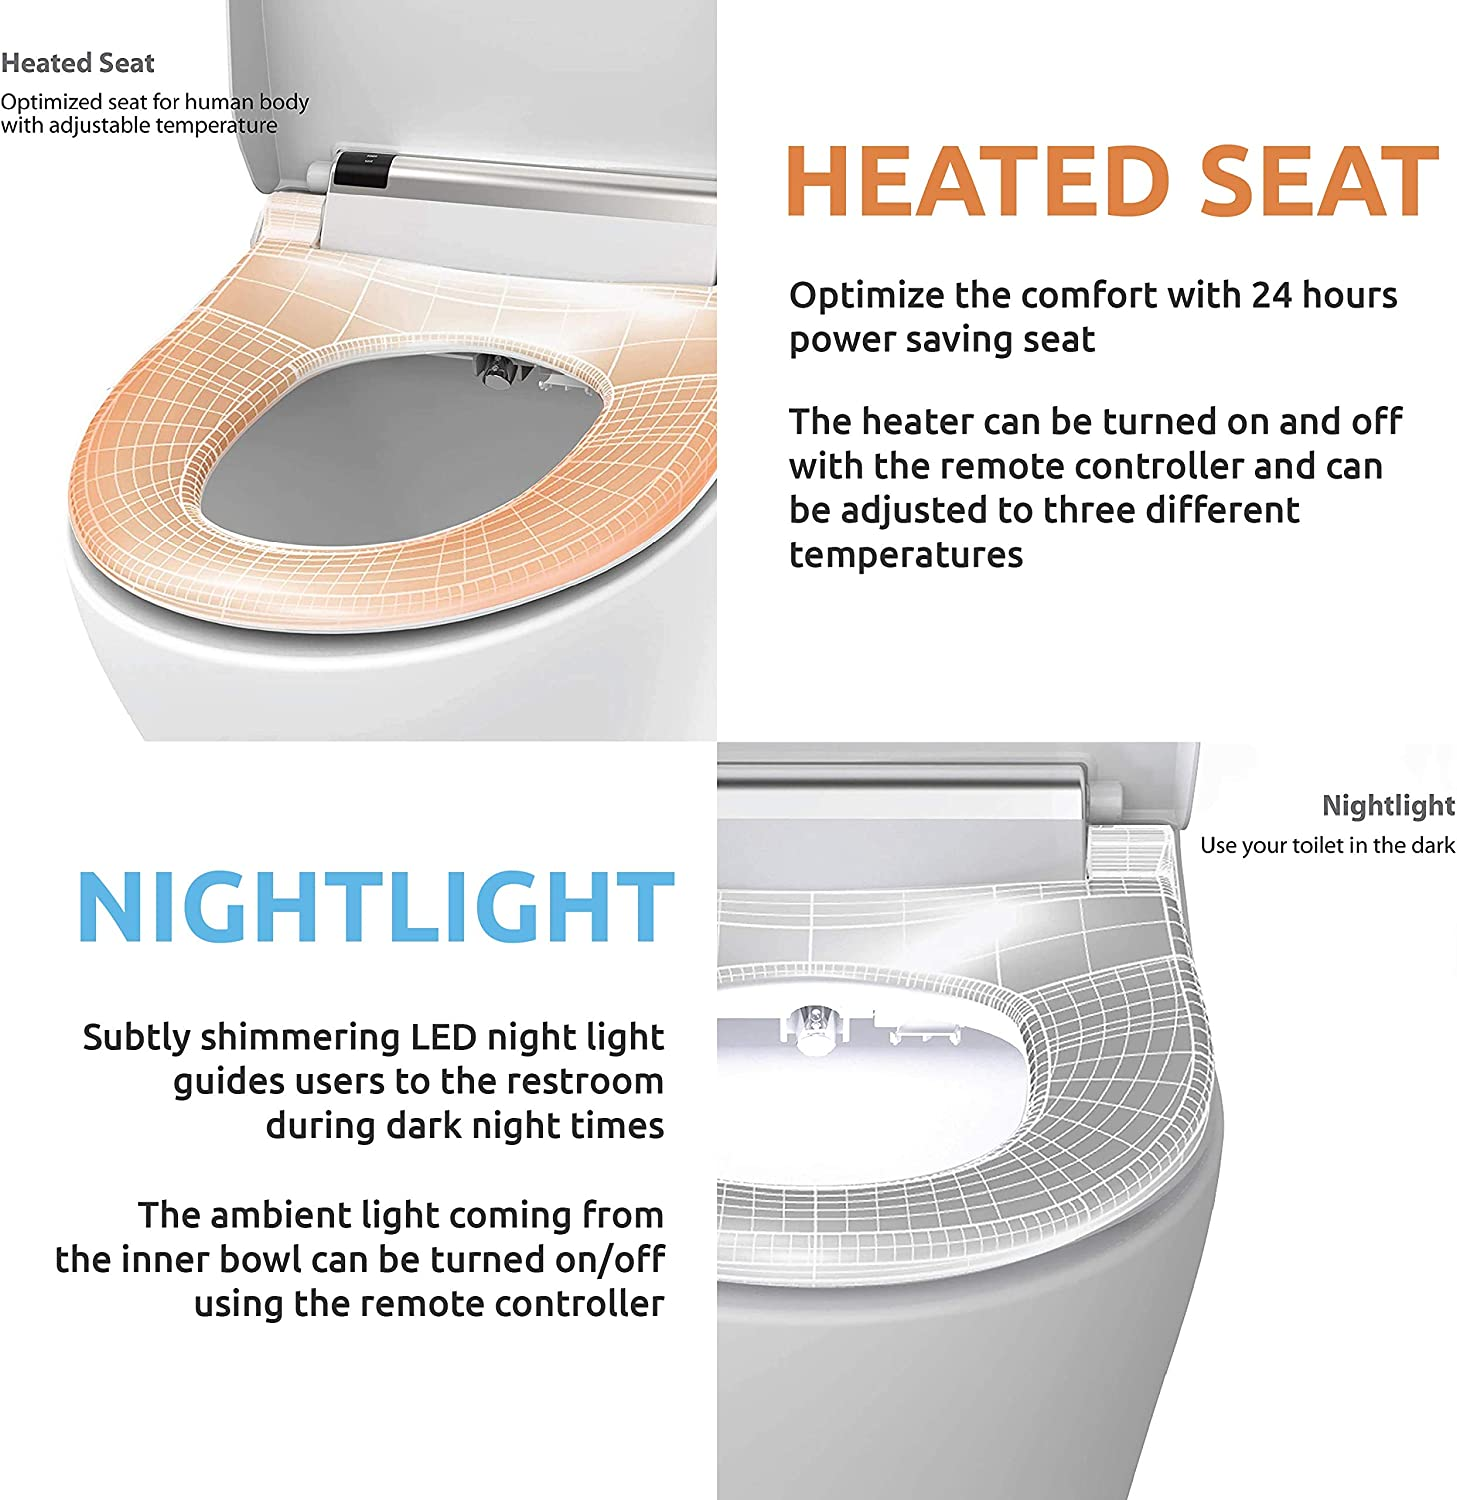 VOVO VB4000 Electronic Smart Bidet Toilet Seat,Elongated,Full Stainless Self-Cleaning Nozzle,Nightlight,Deodorization,Eco-Friendly Energy Saving,Heated Seat,Warm Dry and Water,White,Made in Korea